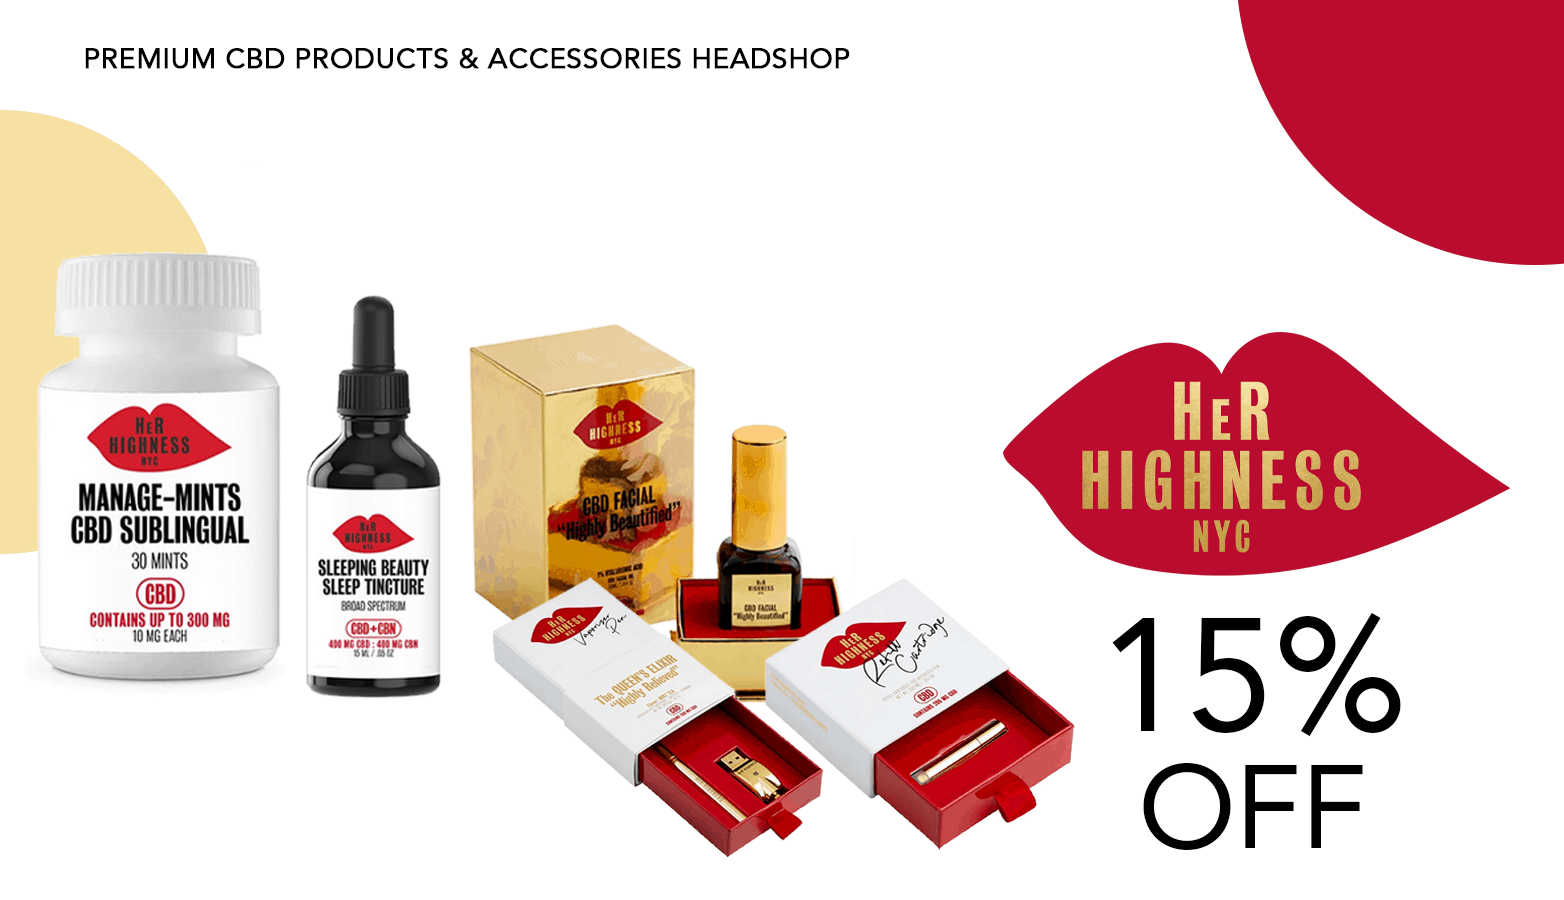 Her Highness CBD Coupon Code Offer Website